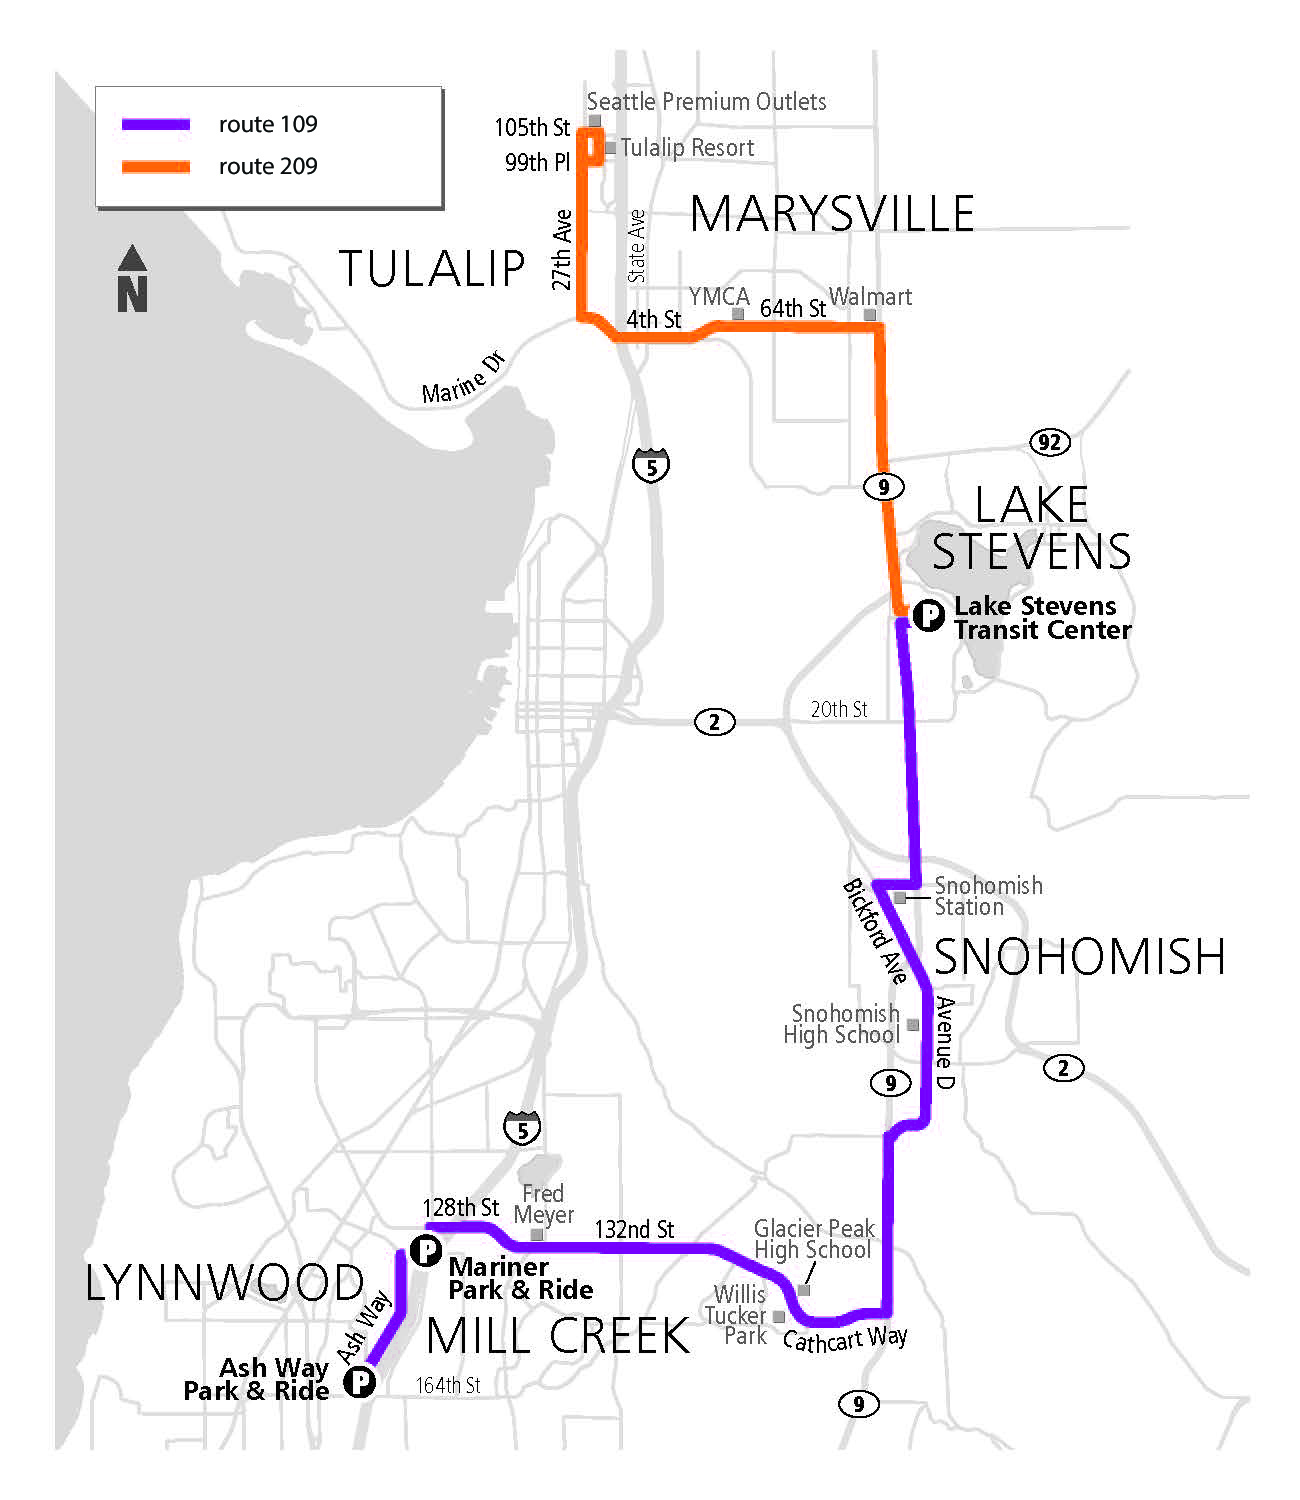 Routes 109 (purple) and 209 (orange) begin service September 11.